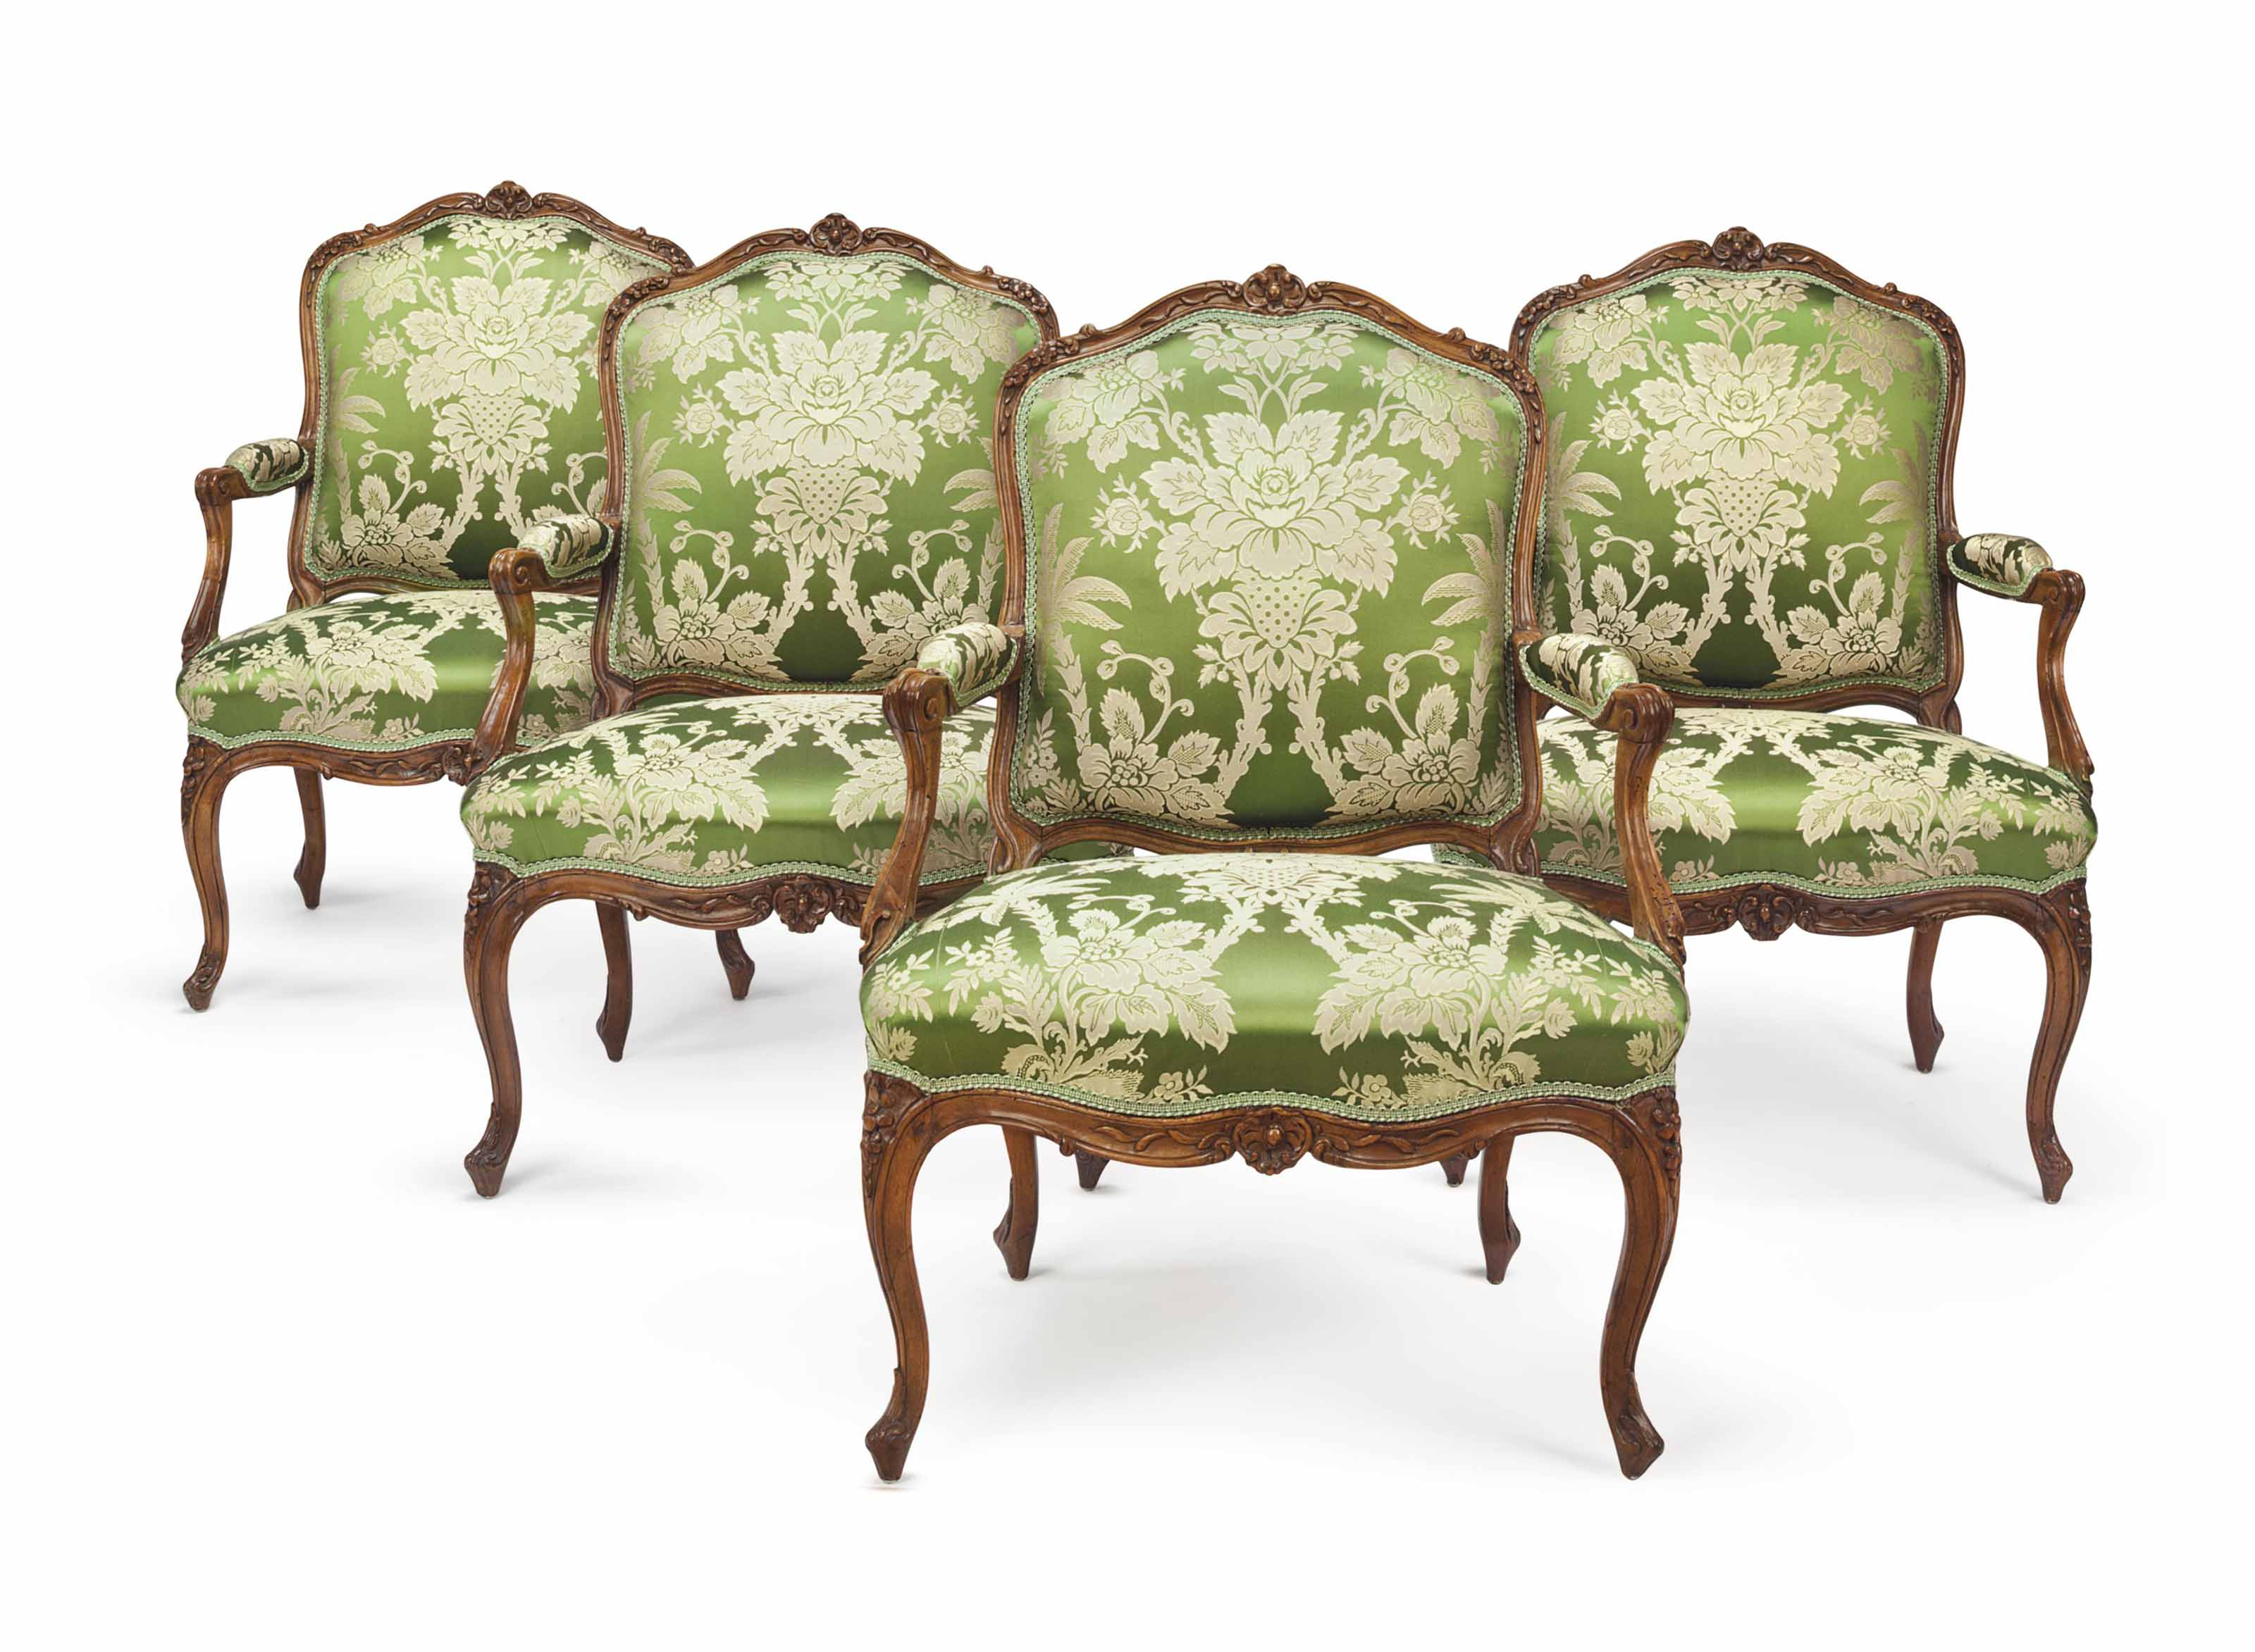 4 Fauteuils Louis Xv A Set Of Four Louis Xv Walnut Fauteuils By Louis Cresson